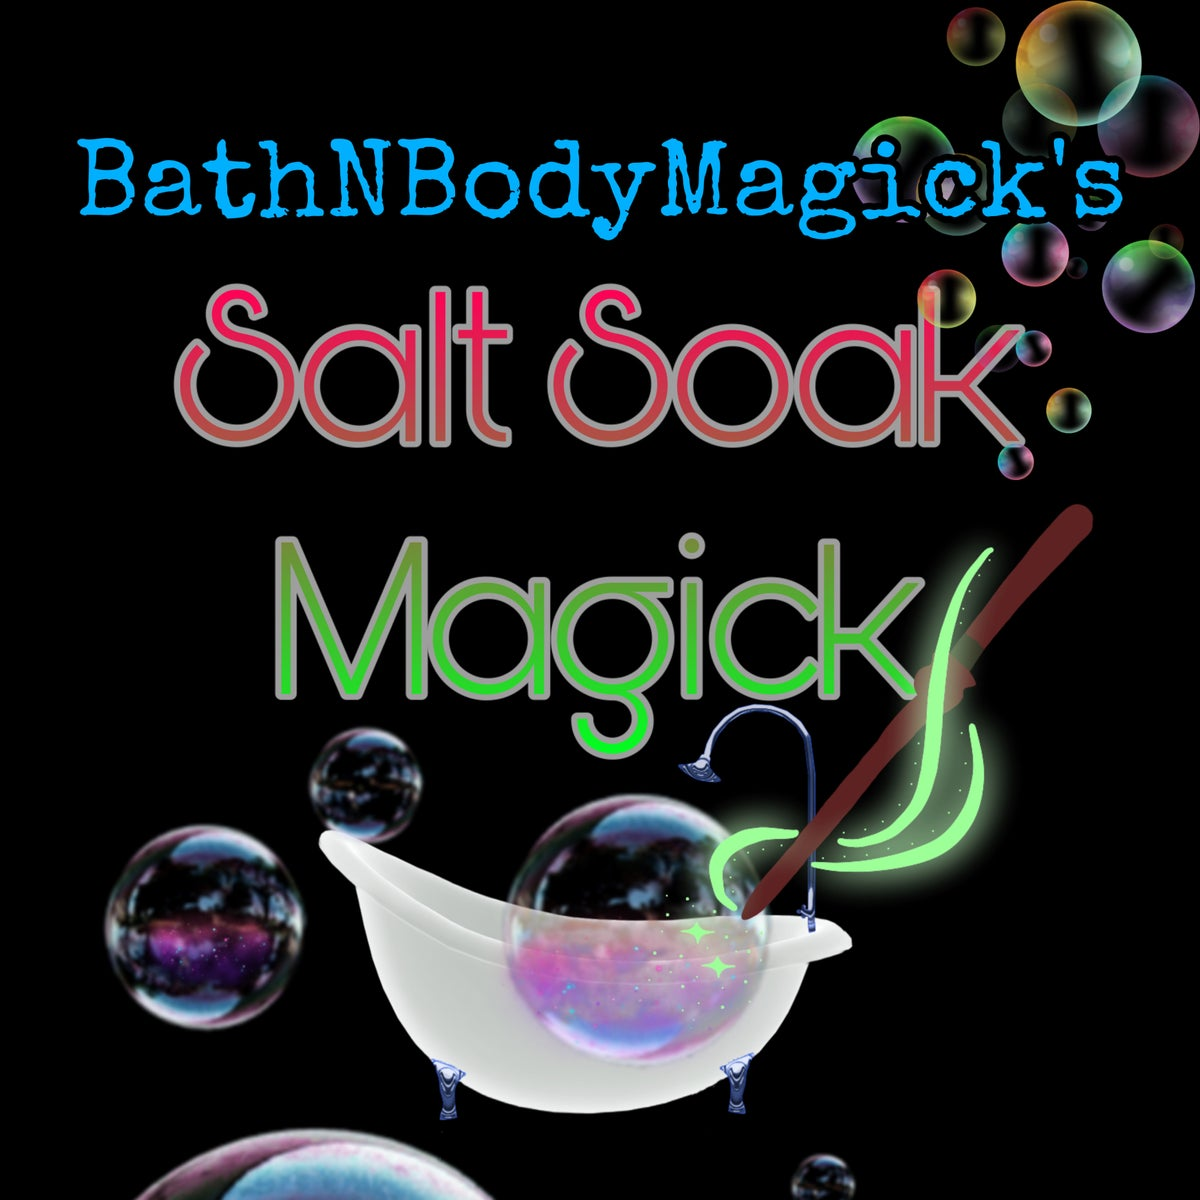 Image of Salt Soak Magick